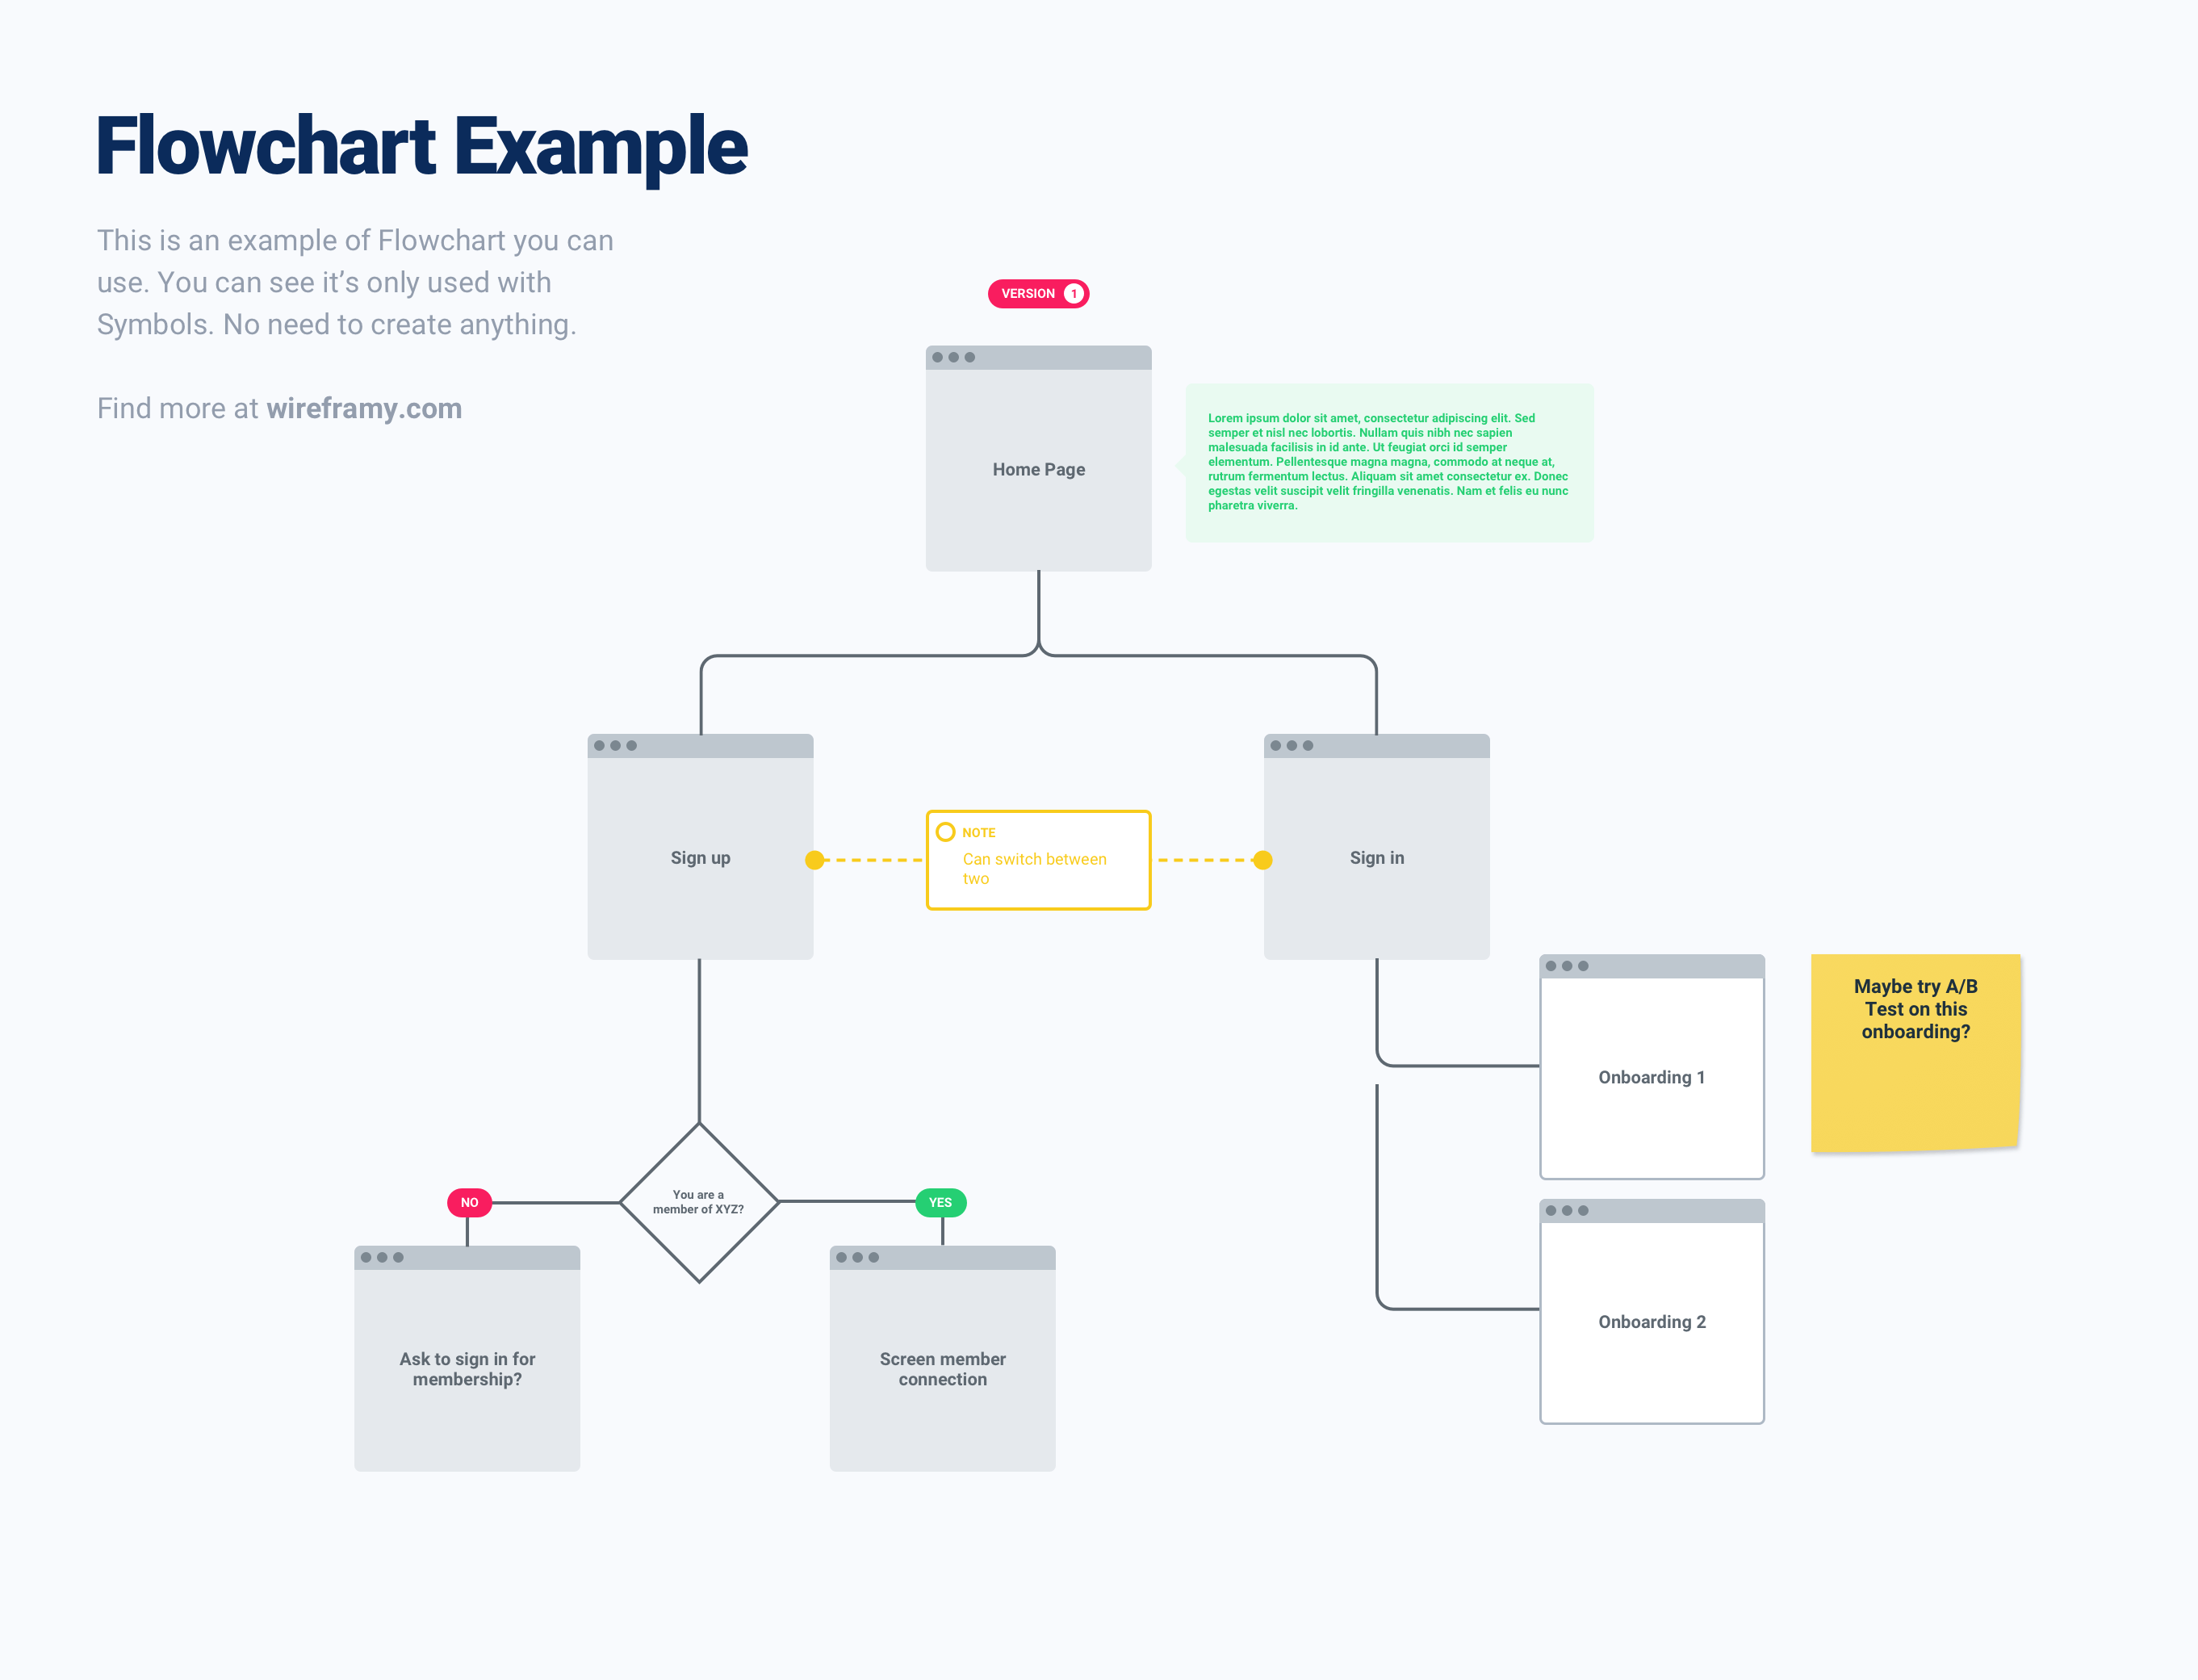 Wireframy - Flowcharts